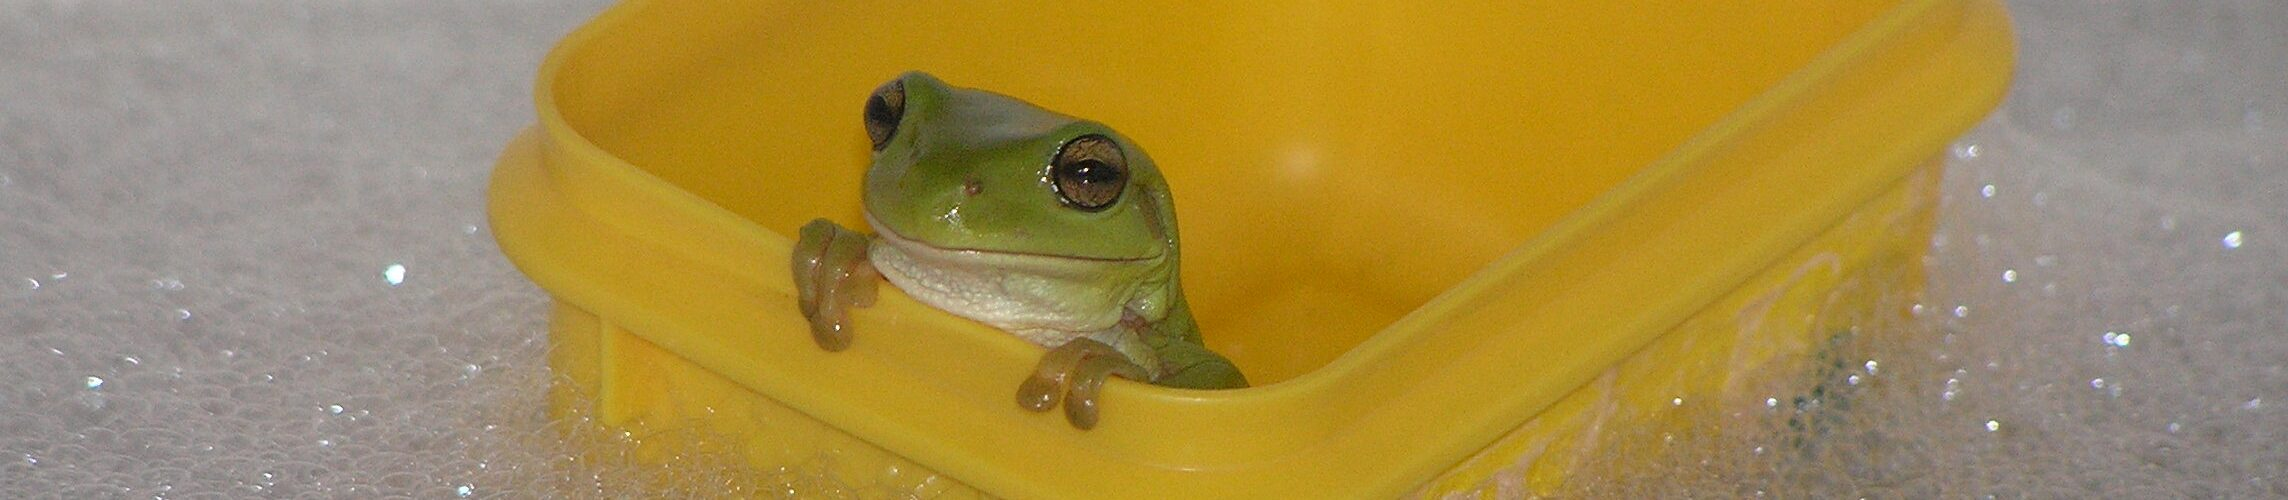 Frog in a boat in a bath